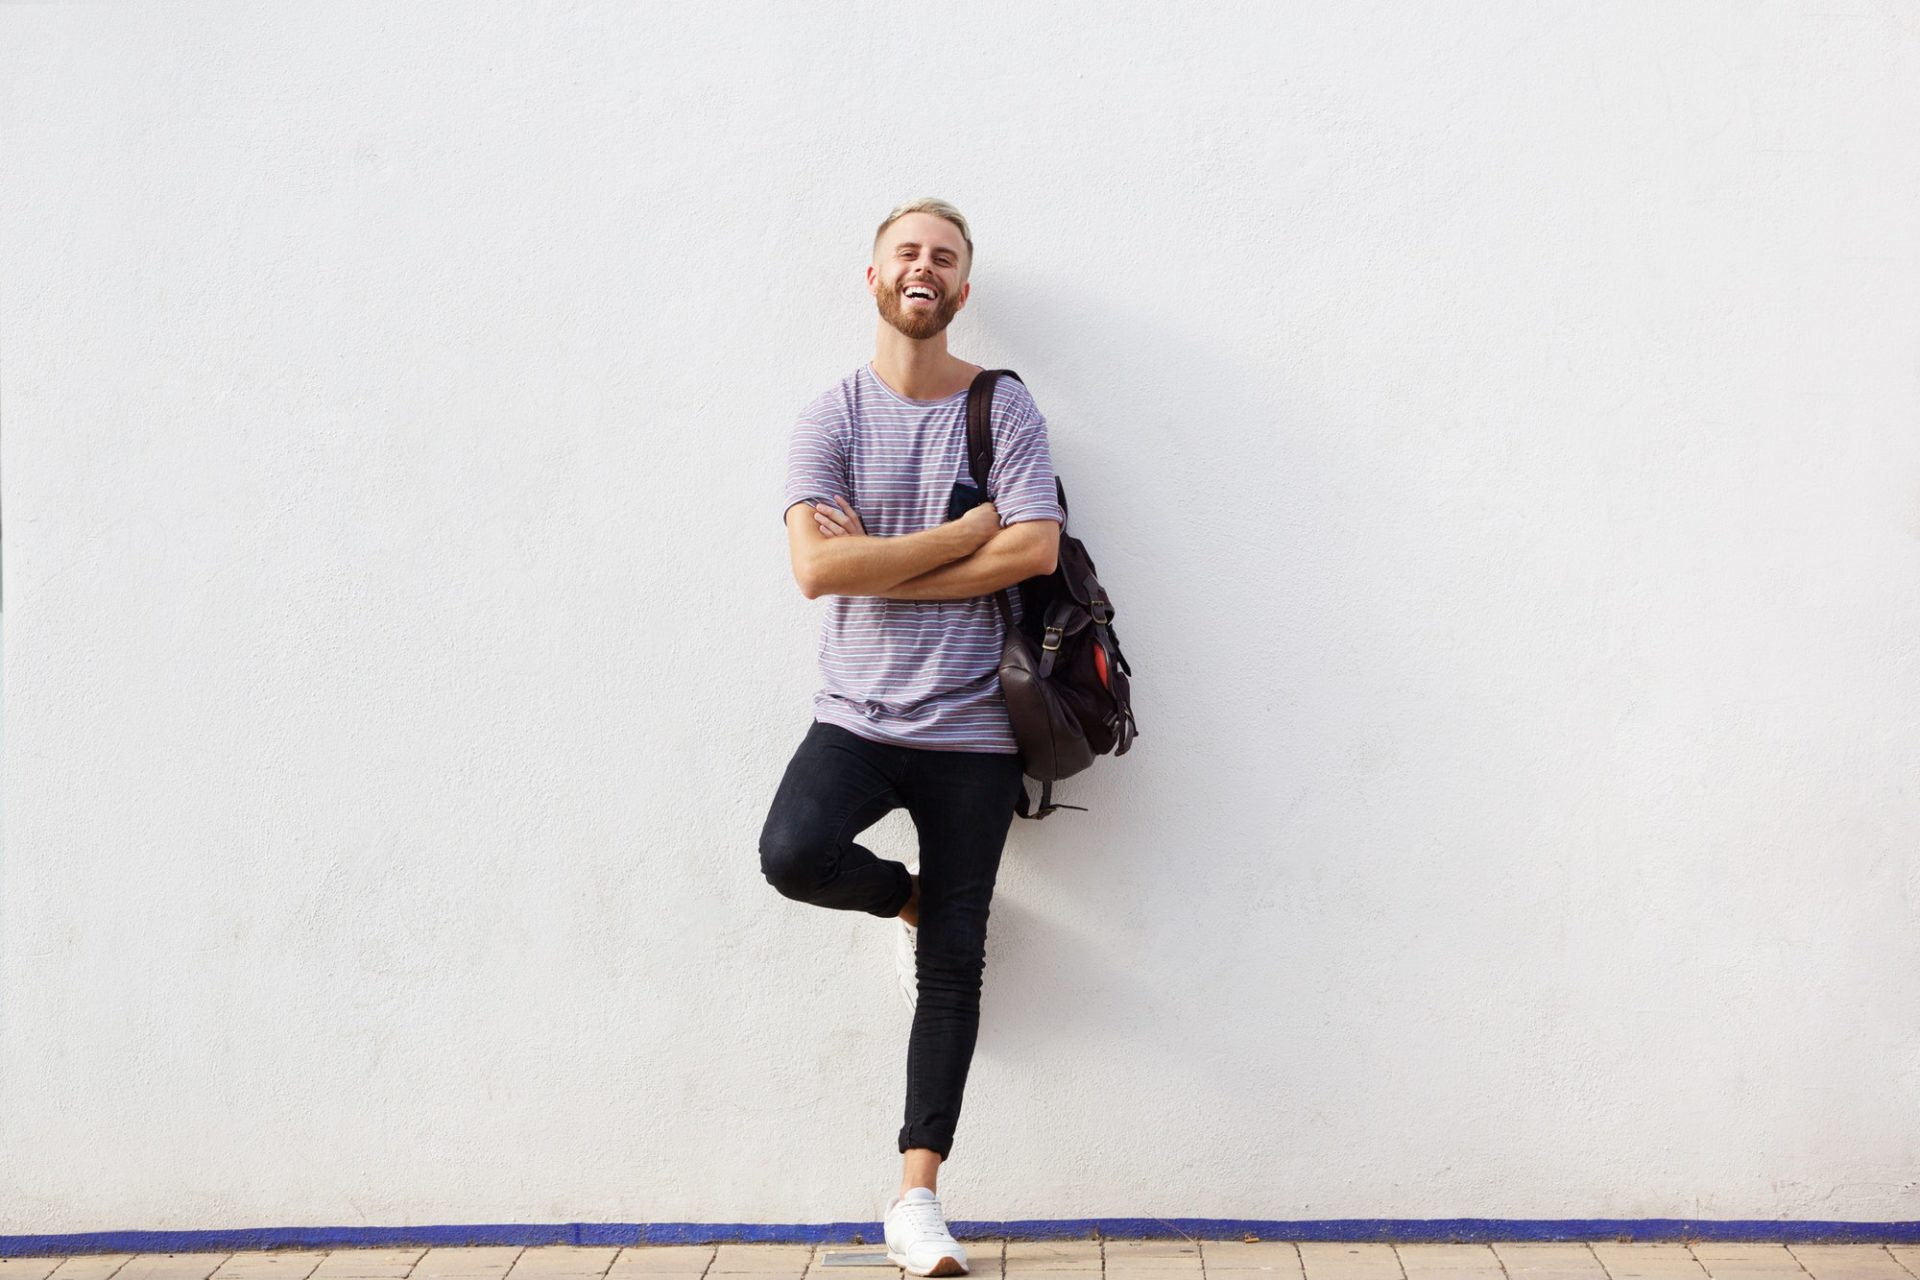 Full body happy young man with beard leaning against wall with arms crossed